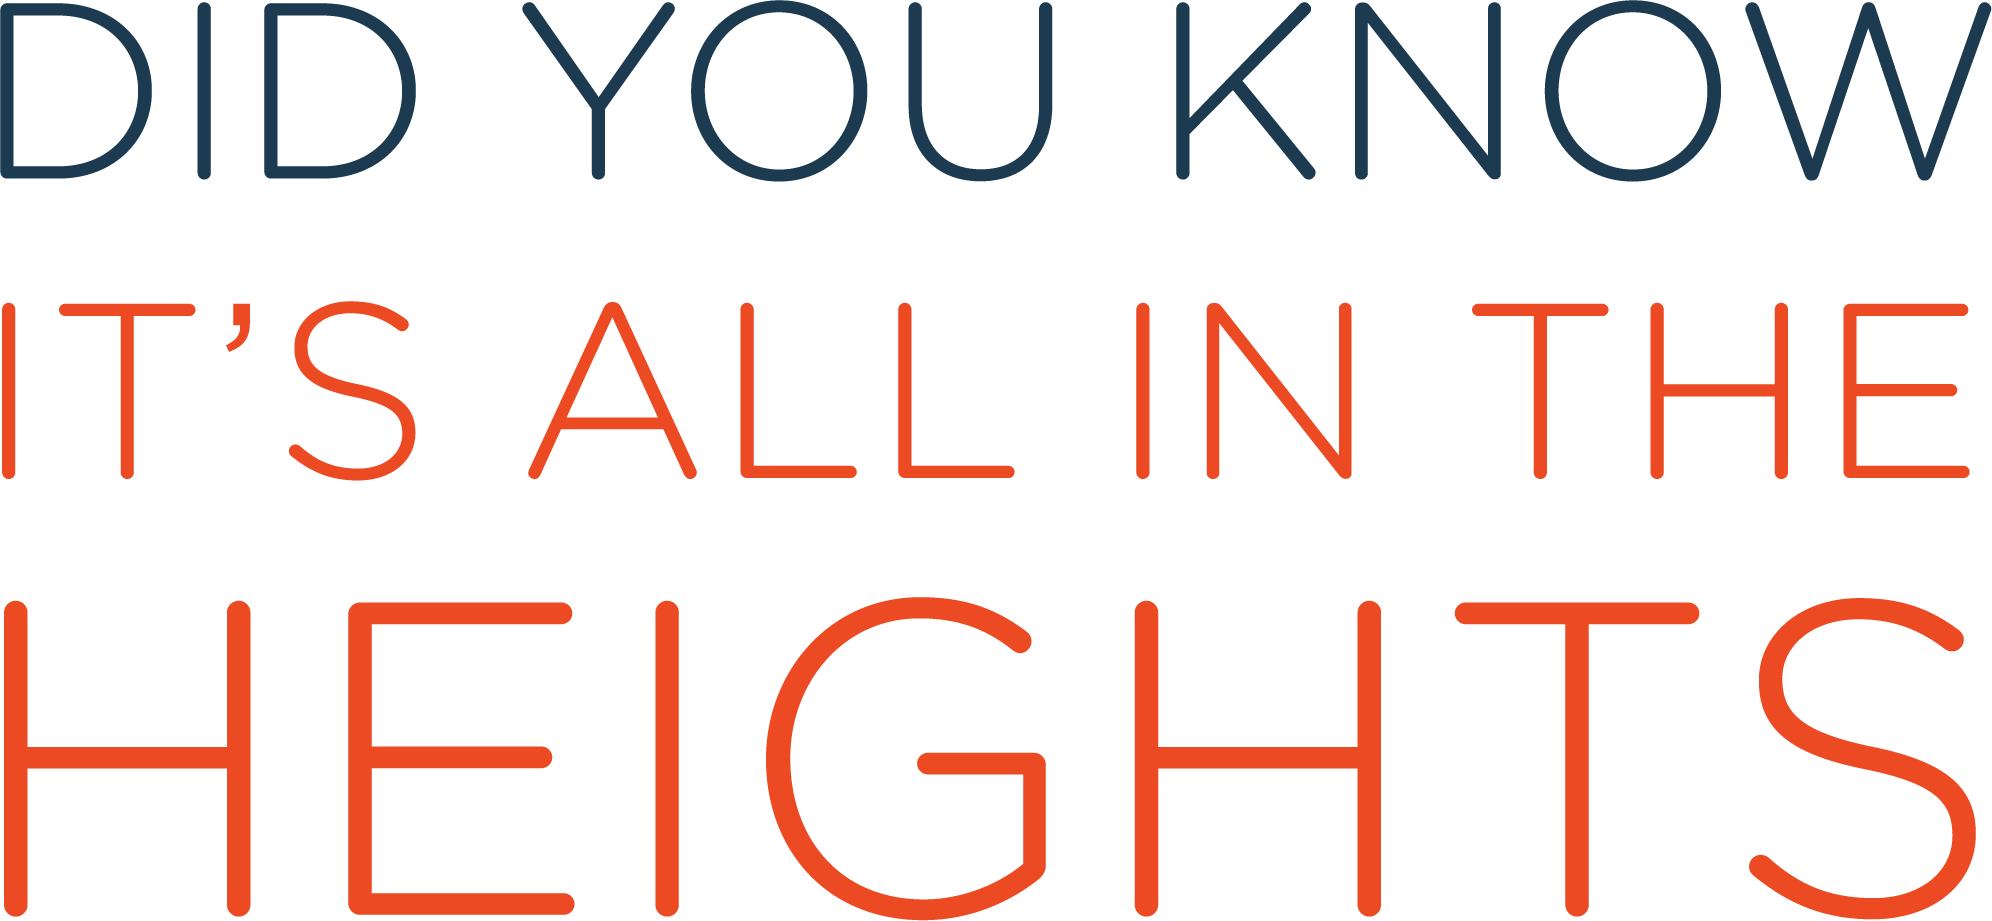 InTheHeights_LogoType.png